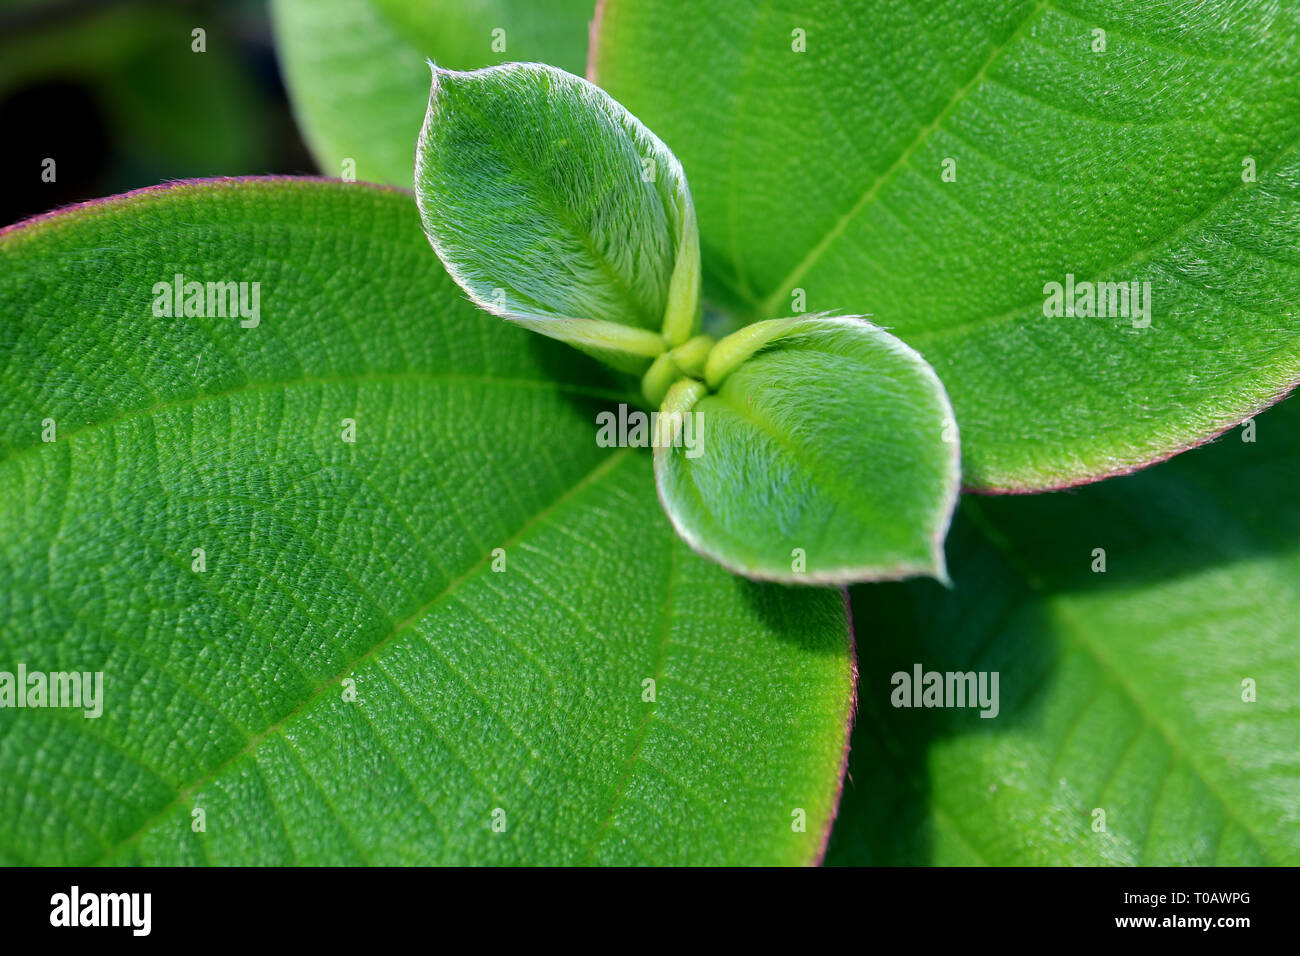 Closed up texture of vibrant green young hairy leaves - Stock Image